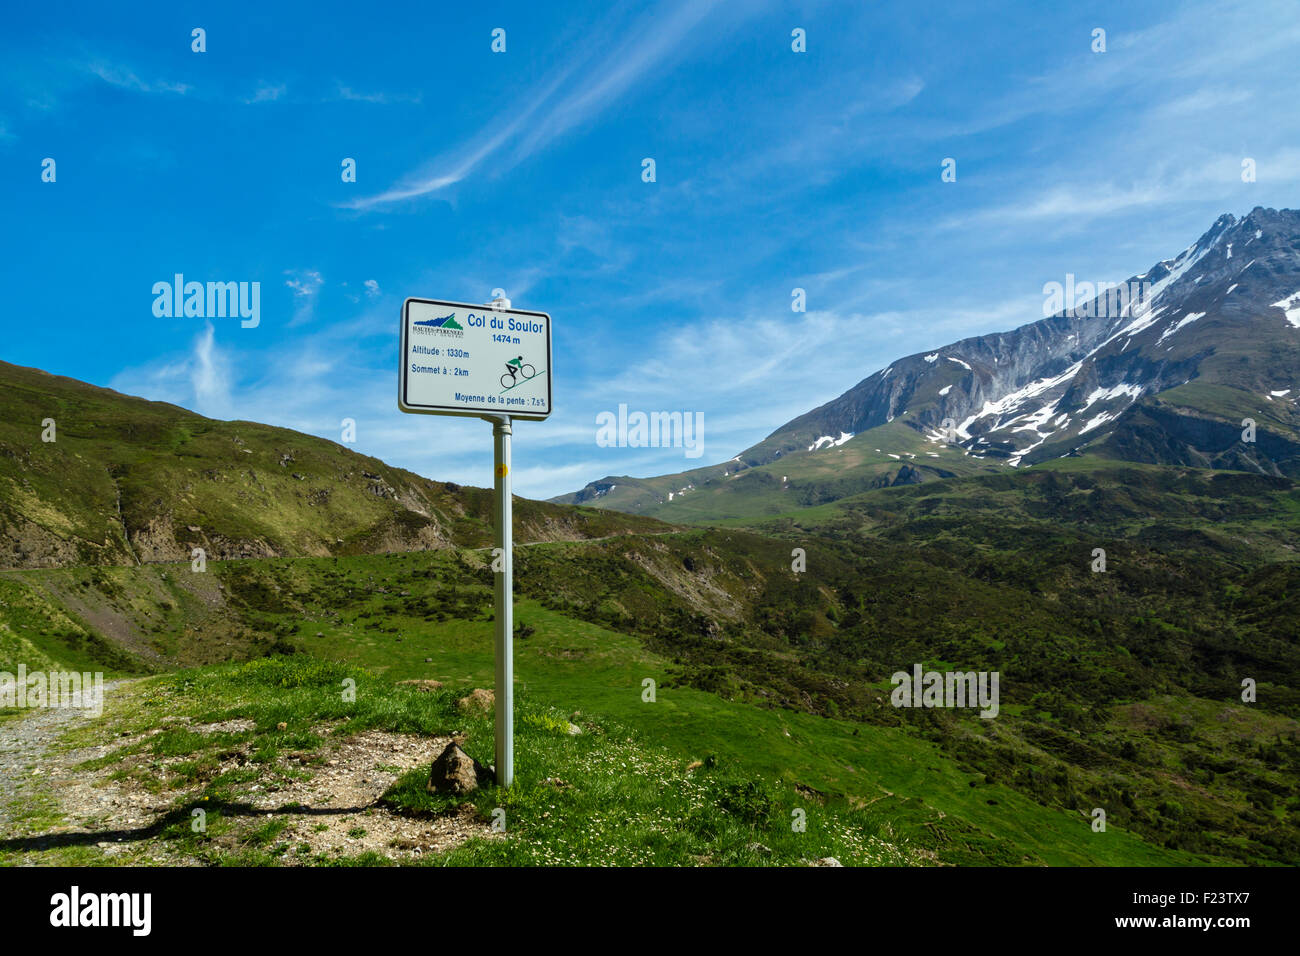 Climbing road to col du Soulor, Hautes Pyrenees, France Stock Photo